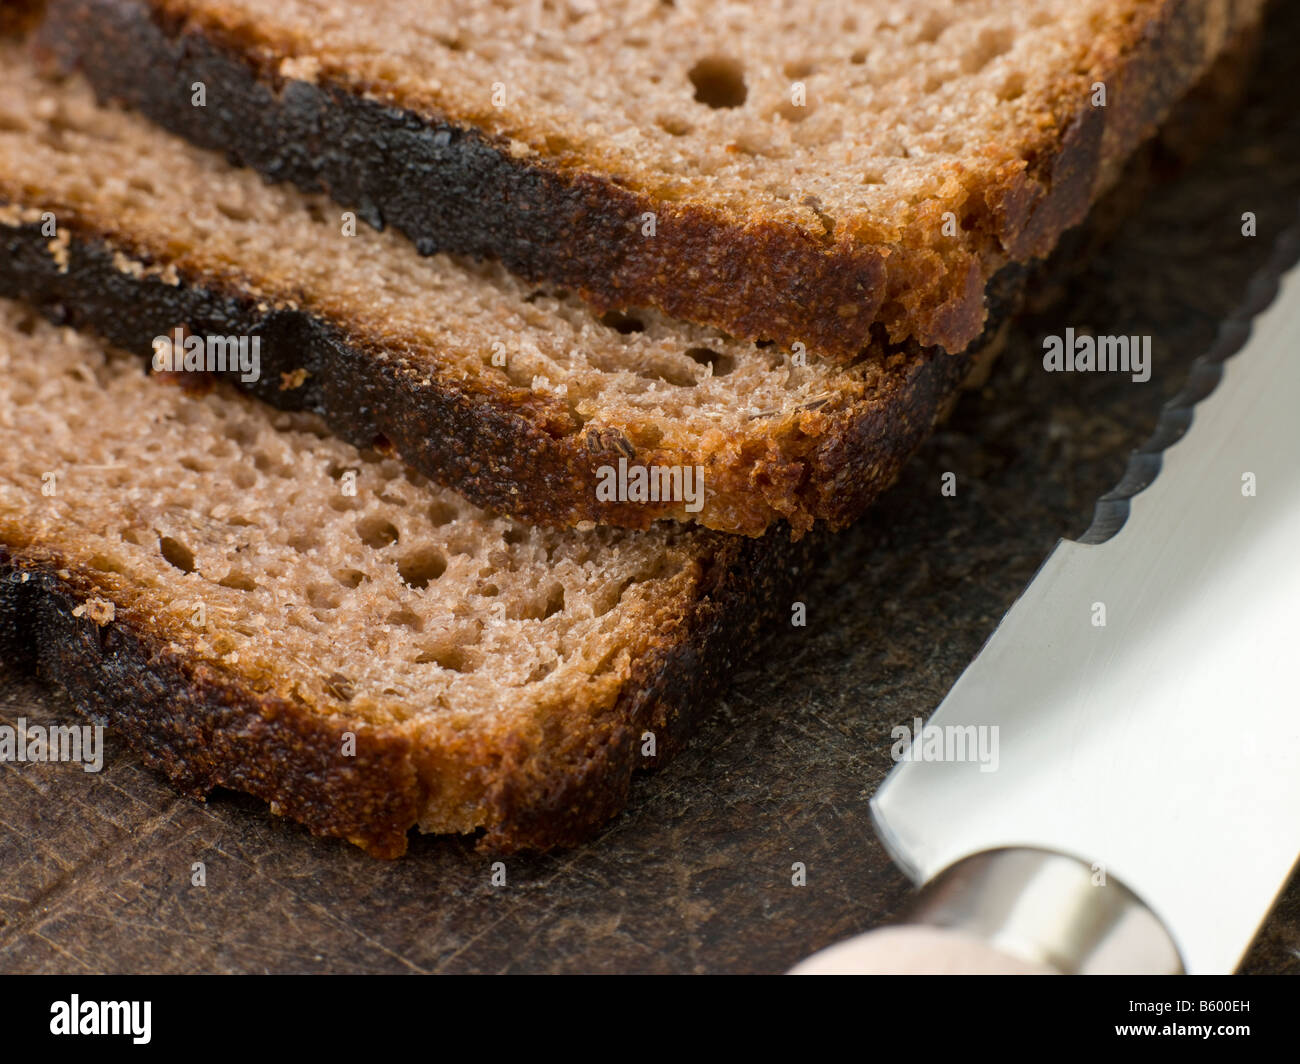 Slices of Rye Bread on a Chopping Board - Stock Image